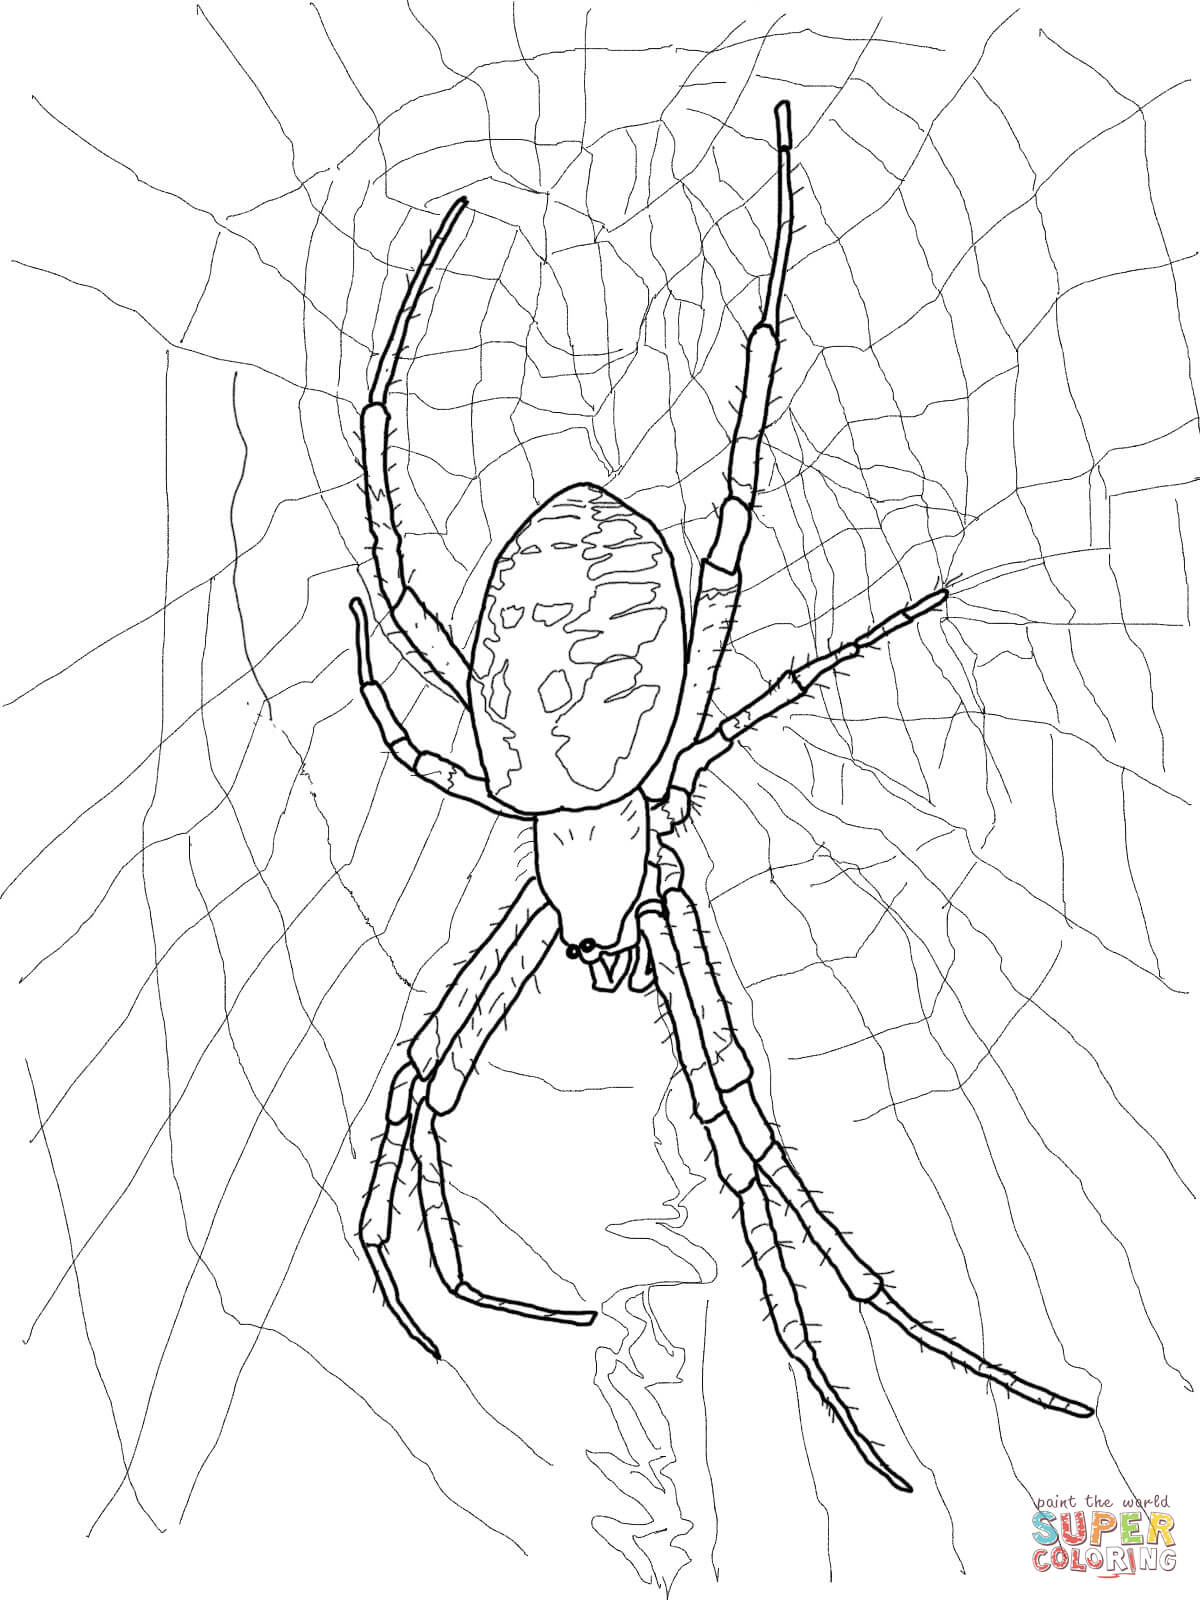 Redback Spider coloring #11, Download drawings